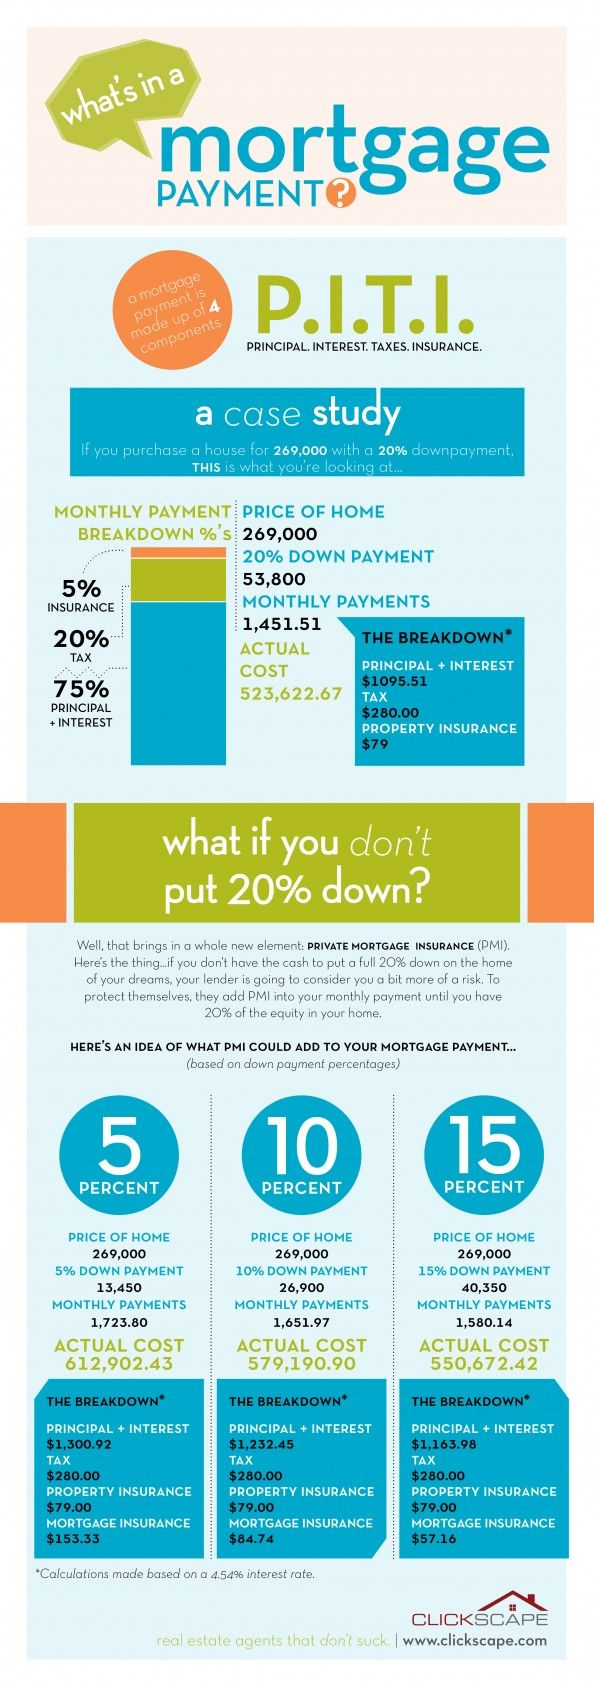 A simple breakdown of what's in a mortgage payment.